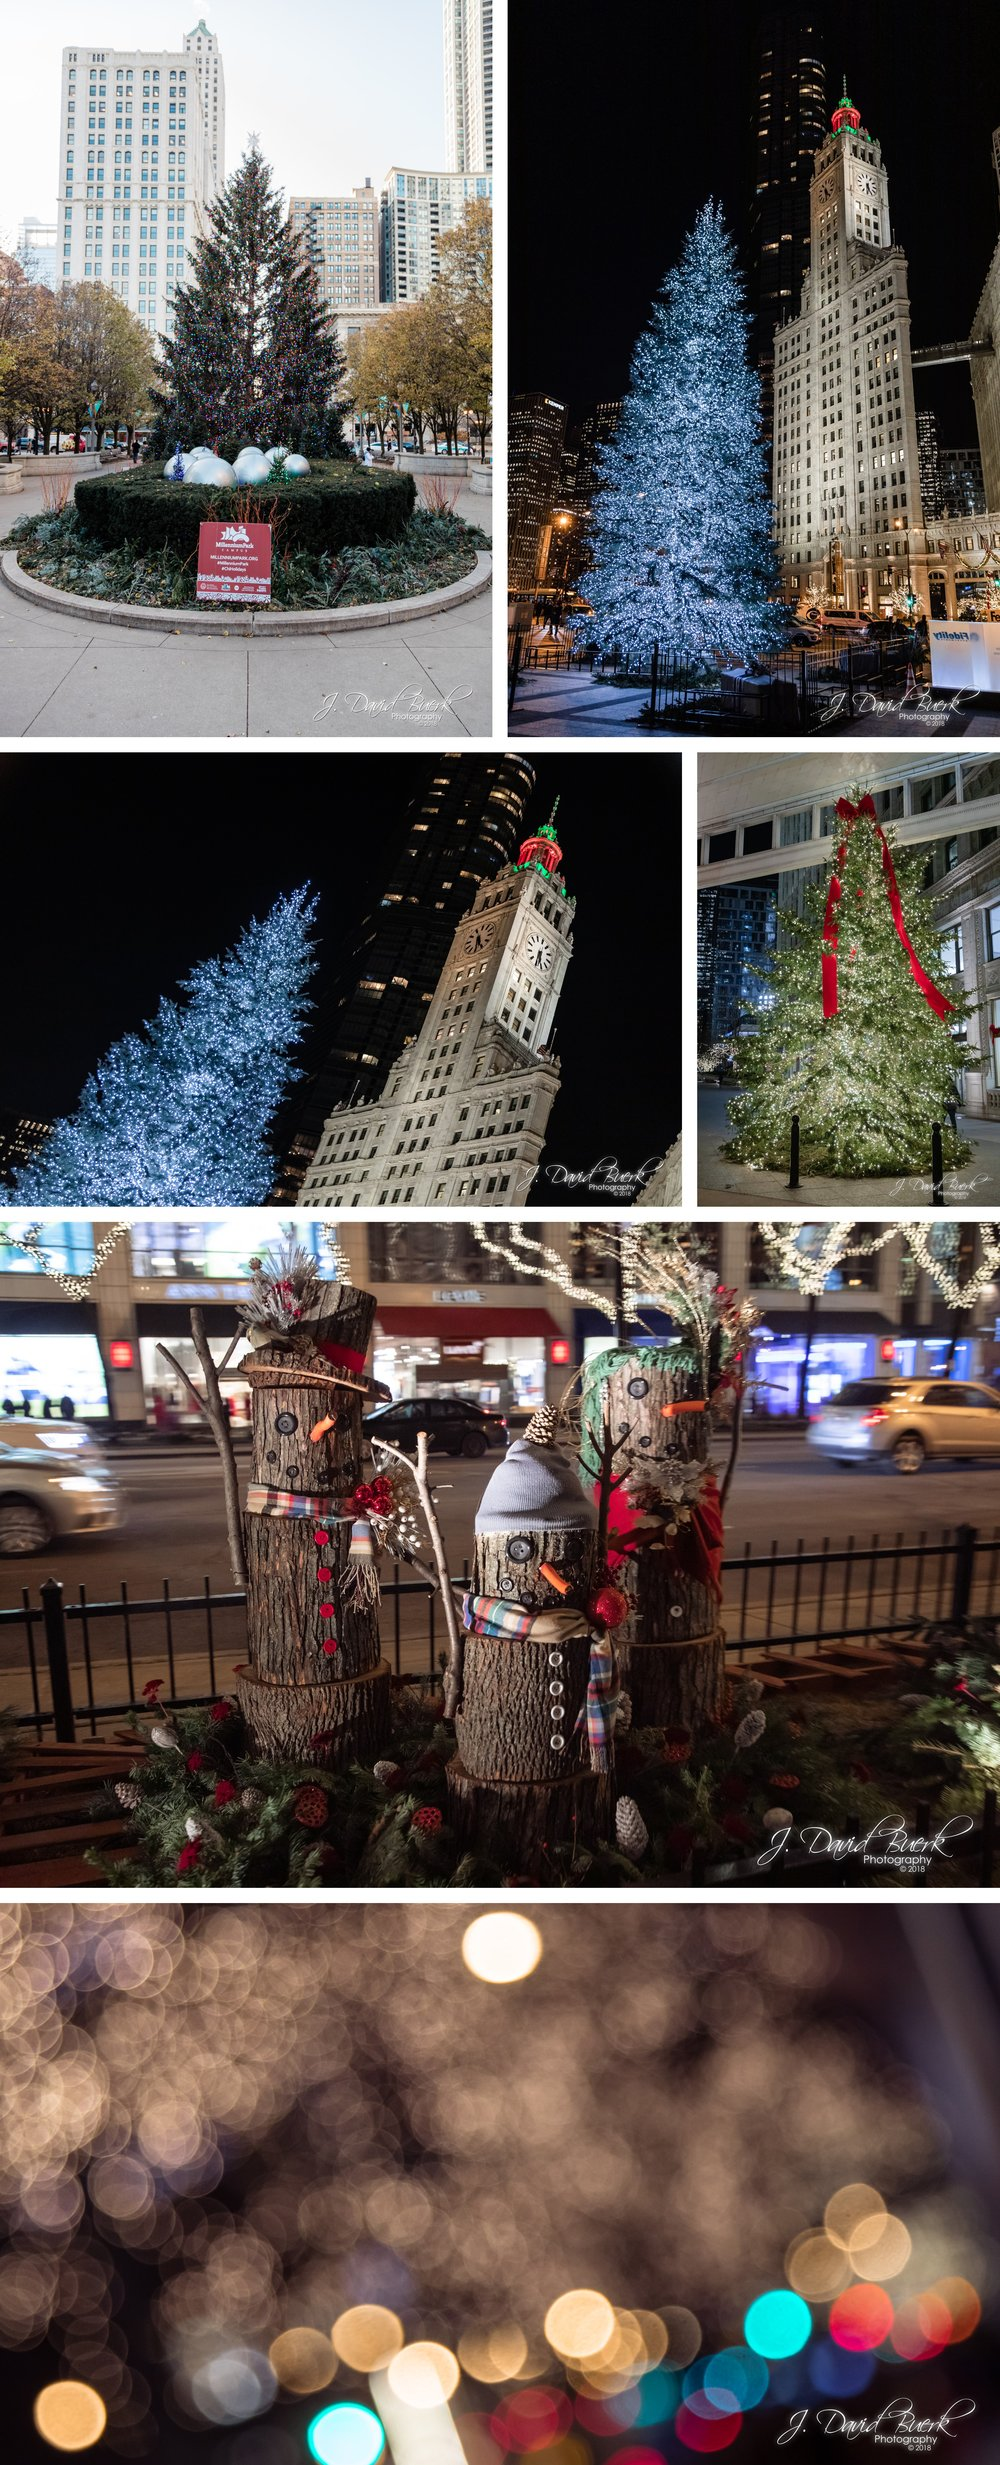 20181225 - Christmas in Chicago 6.jpg